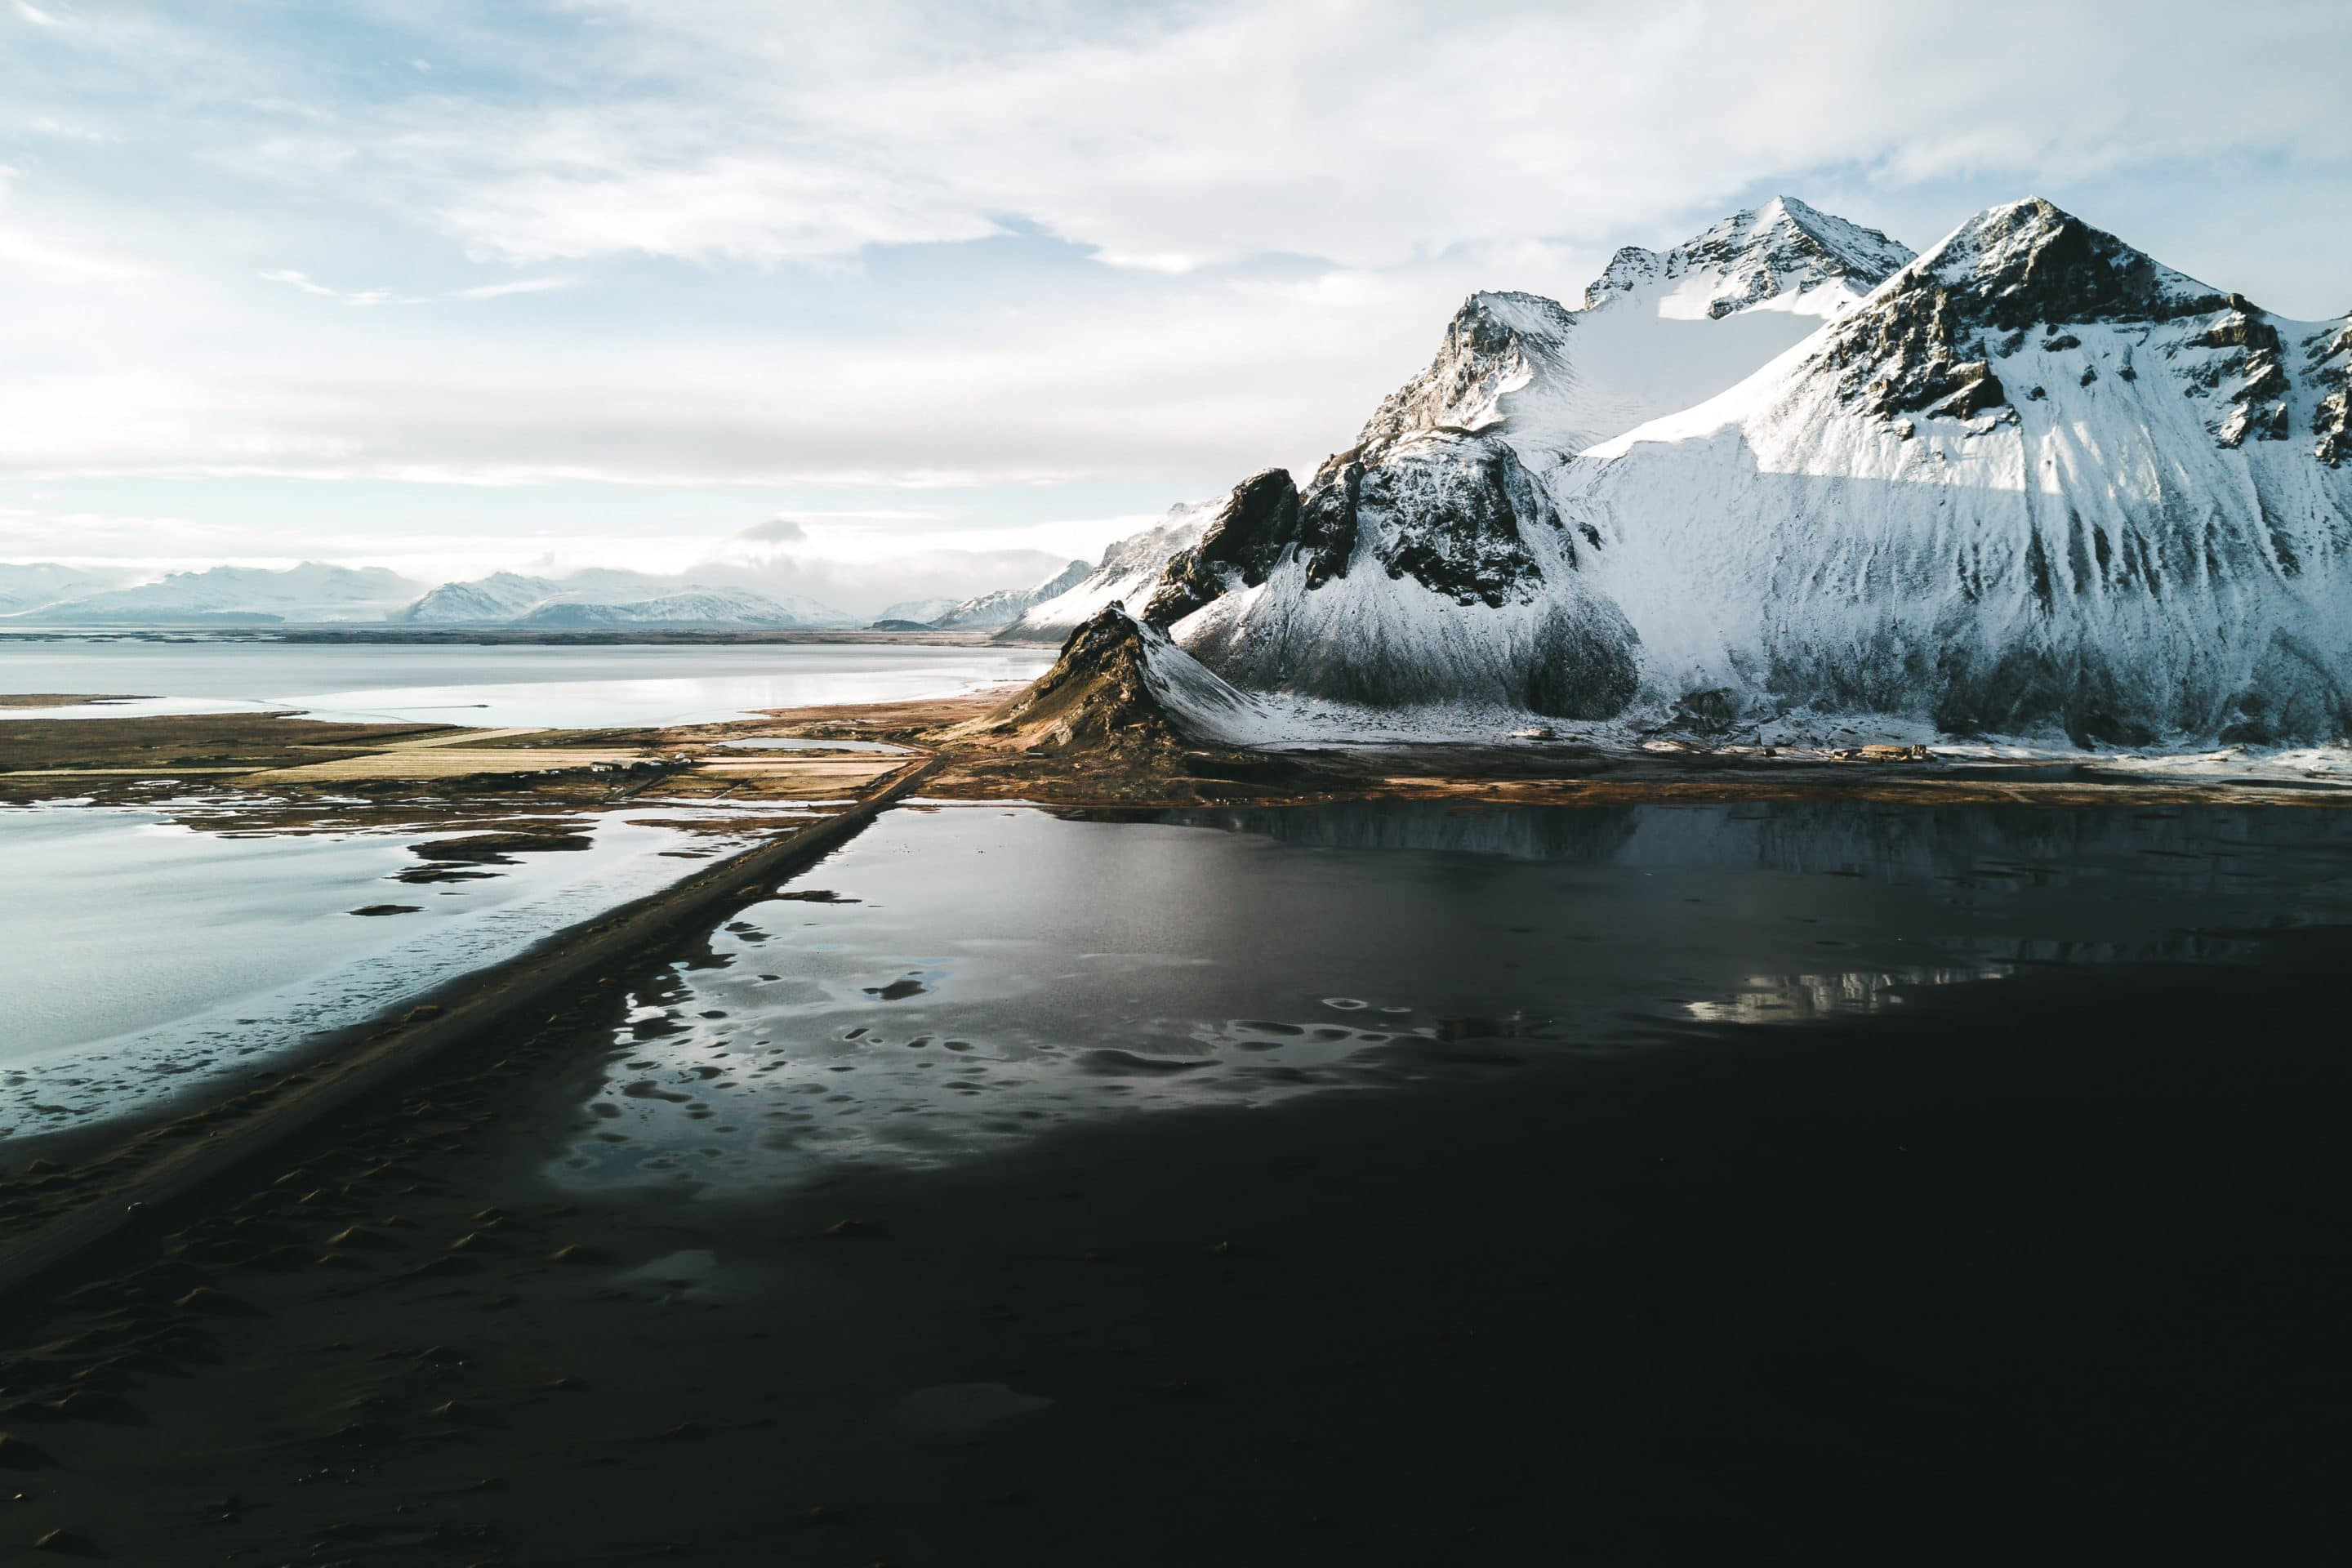 The Stokksnes peninsula in Iceland during a sunset dipping the mountain and beach landscape in moody light by photographer Michael Schauer